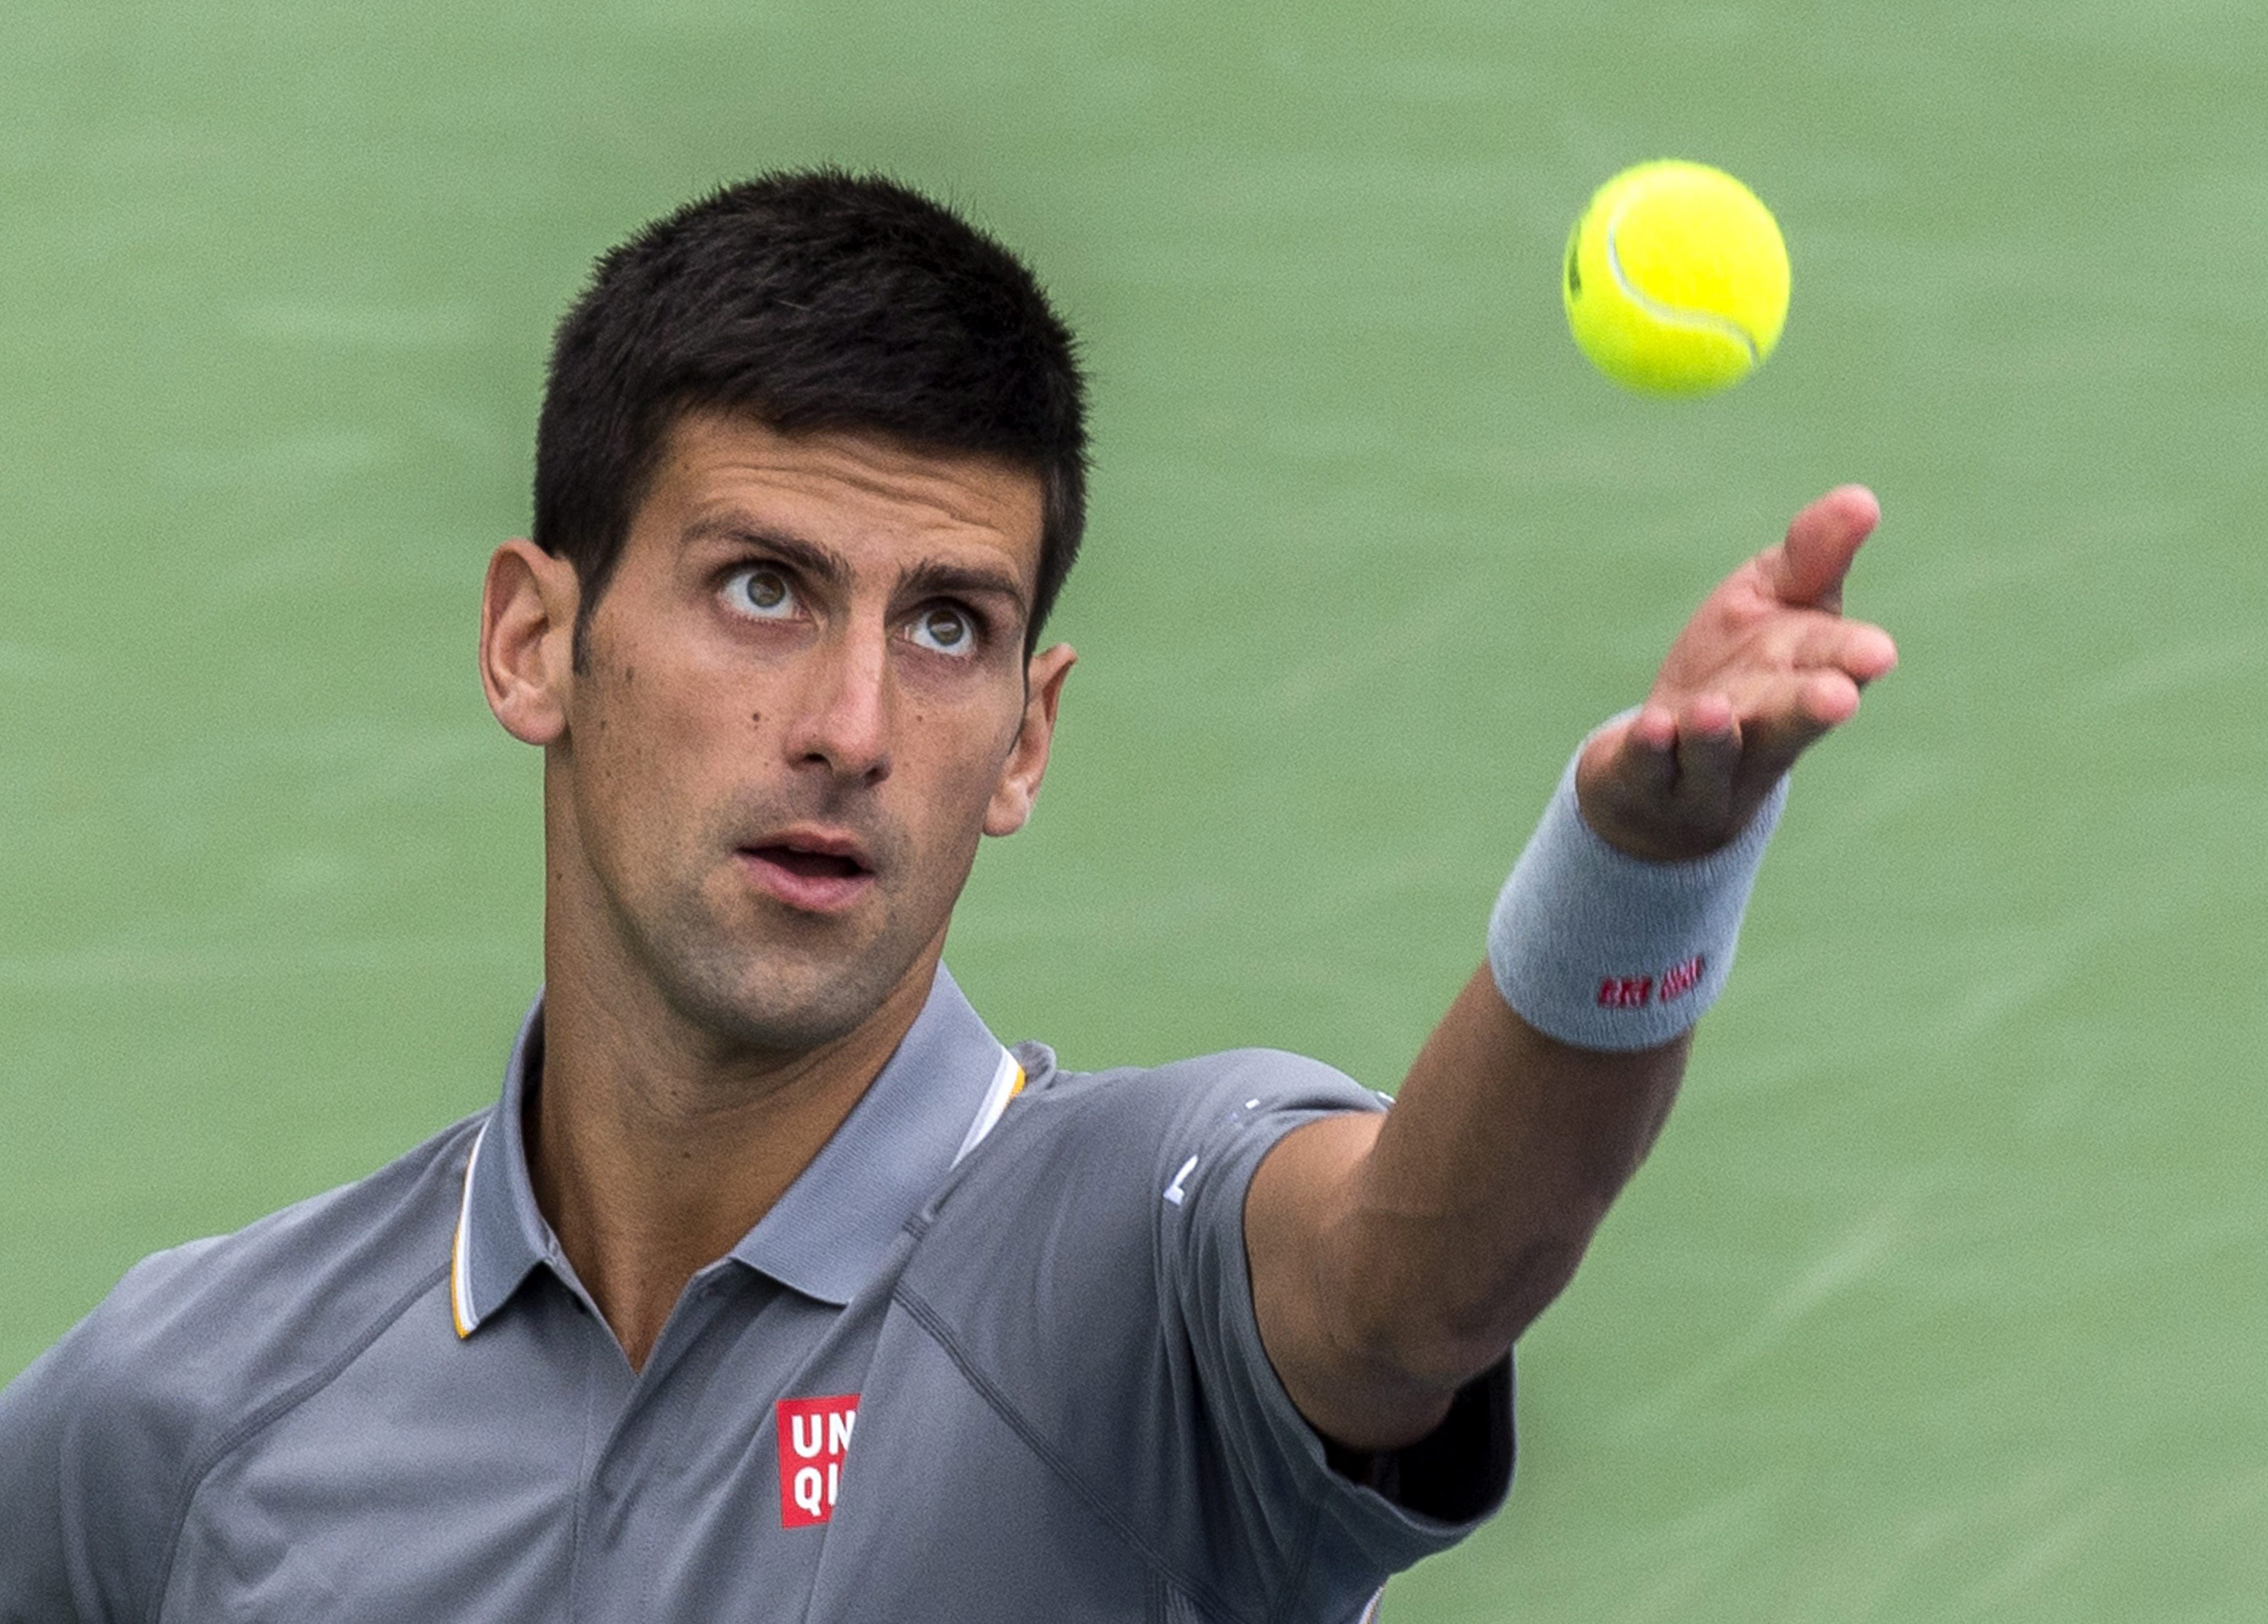 Novak Djokovic, of Serbia, tosses the ball to serve to Jack Sock, of the United States, during the Rogers Cup men's tennis tournament in Montreal, Thursday, Aug. 13, 2015. (Paul Chiasson/The Canadian Press via AP) MANDATORY CREDIT